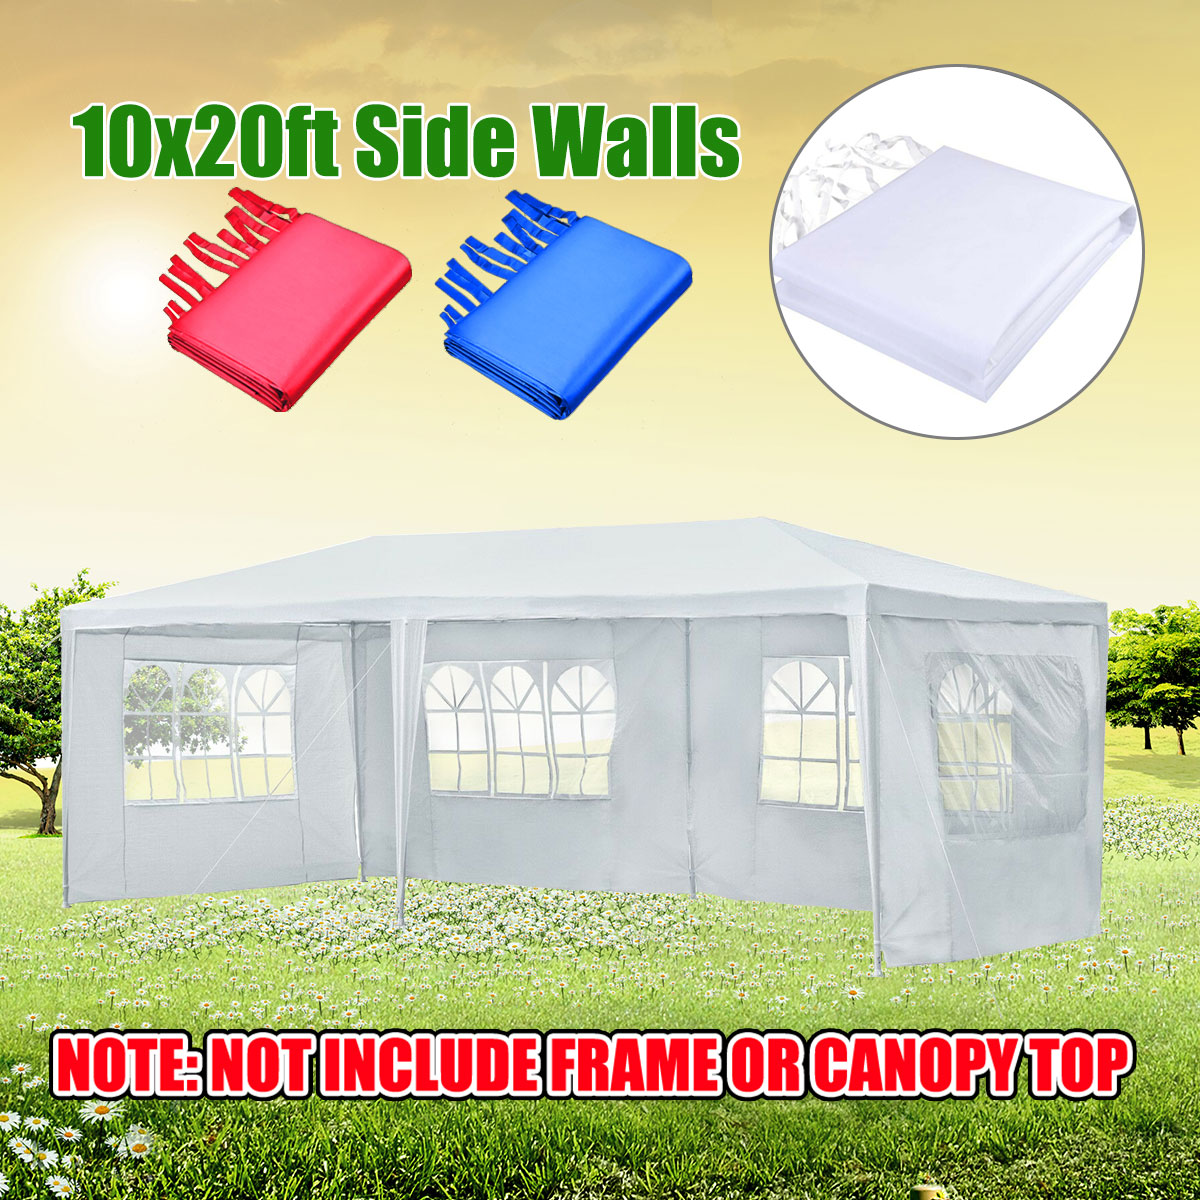 3x6m Oxford Cloth Party Tent Side Walls Waterproof Garden Patio Outdoor Canopy Sun Wall Sunshade Shelter Tarp Sidewall Sunshade